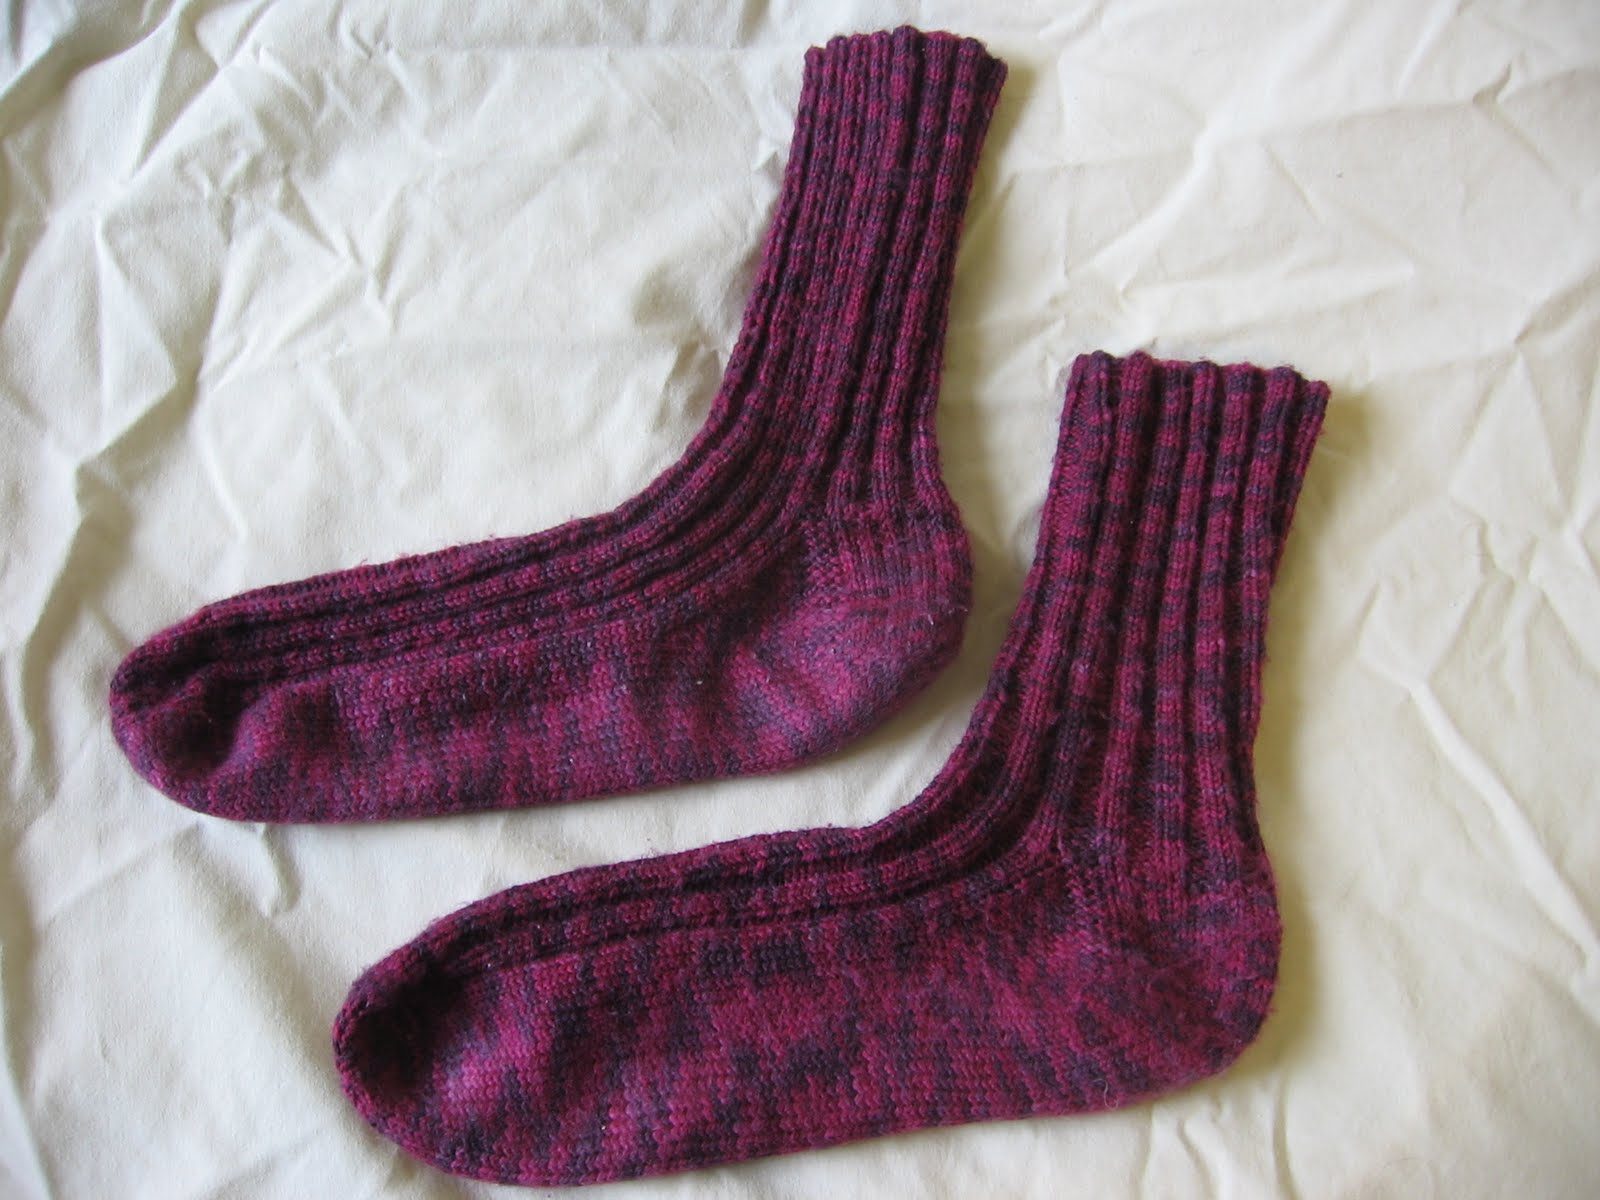 Needle and Spatula: Craft update: more socks, baby booties, and a ...